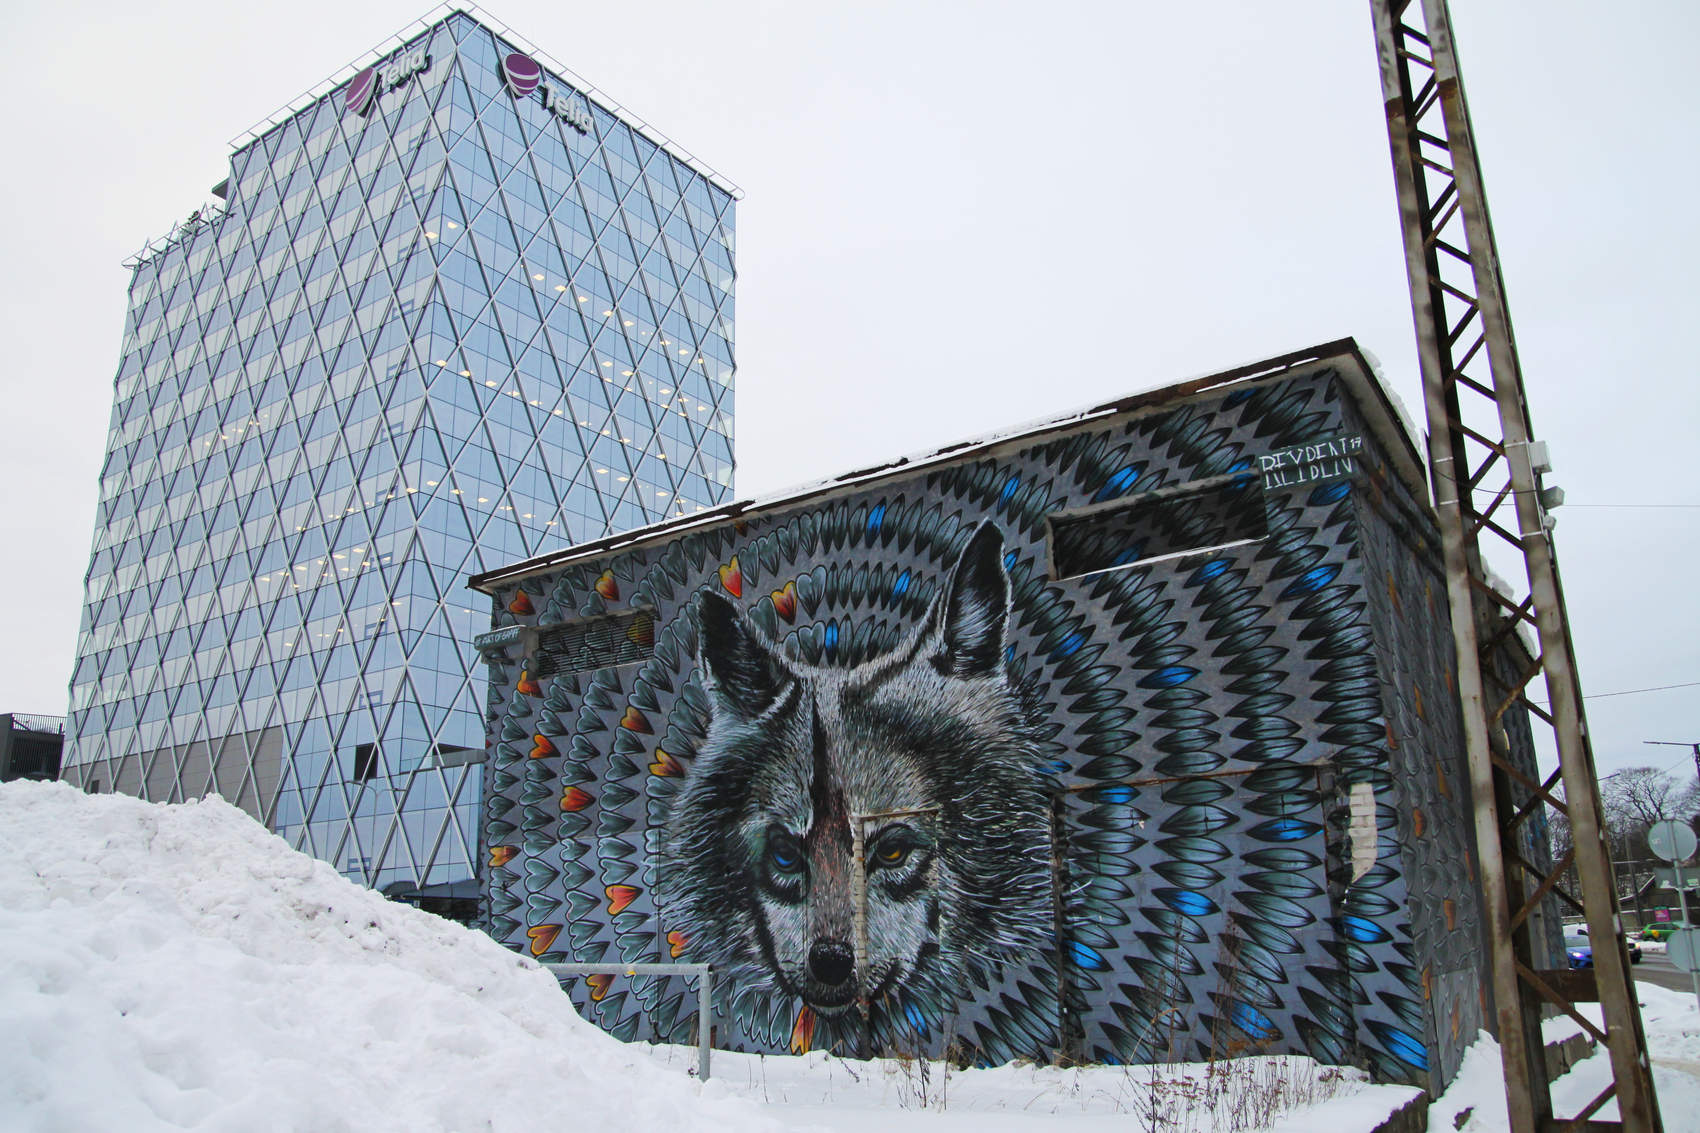 A wolf - street art by Reyben in Tallinn, Estonia Photo: Mairit Krabbi